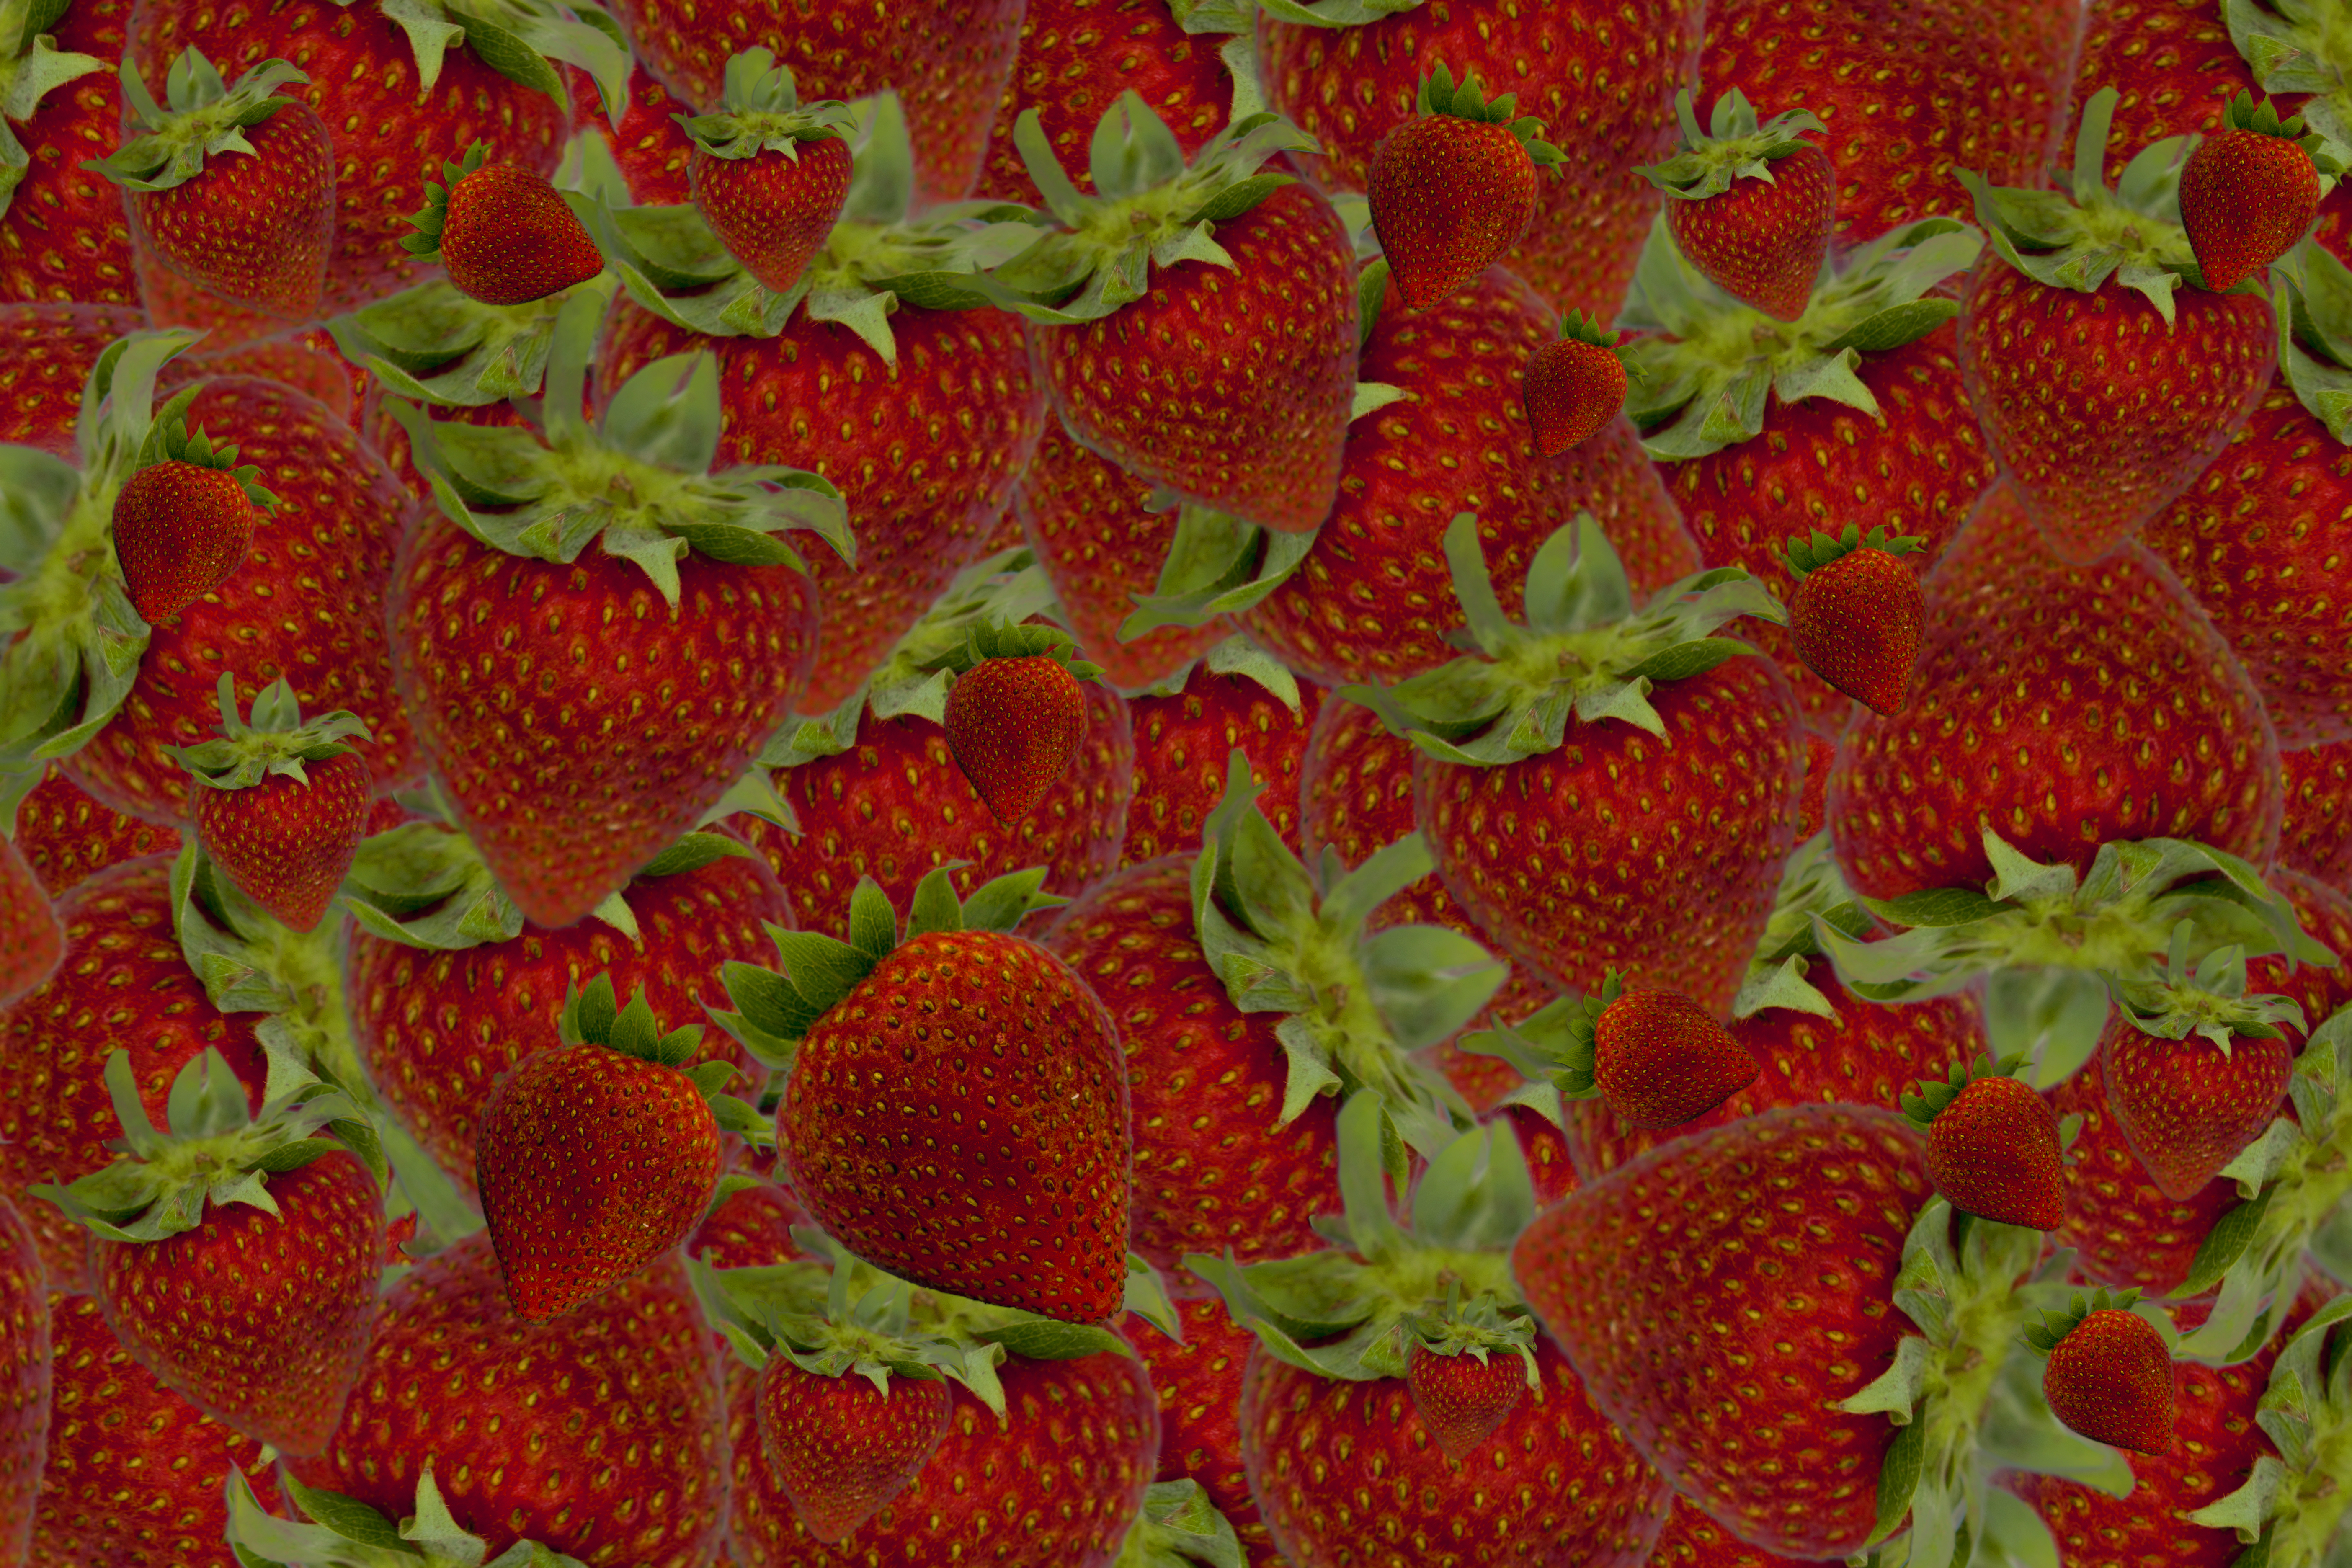 Strawberry Background IV